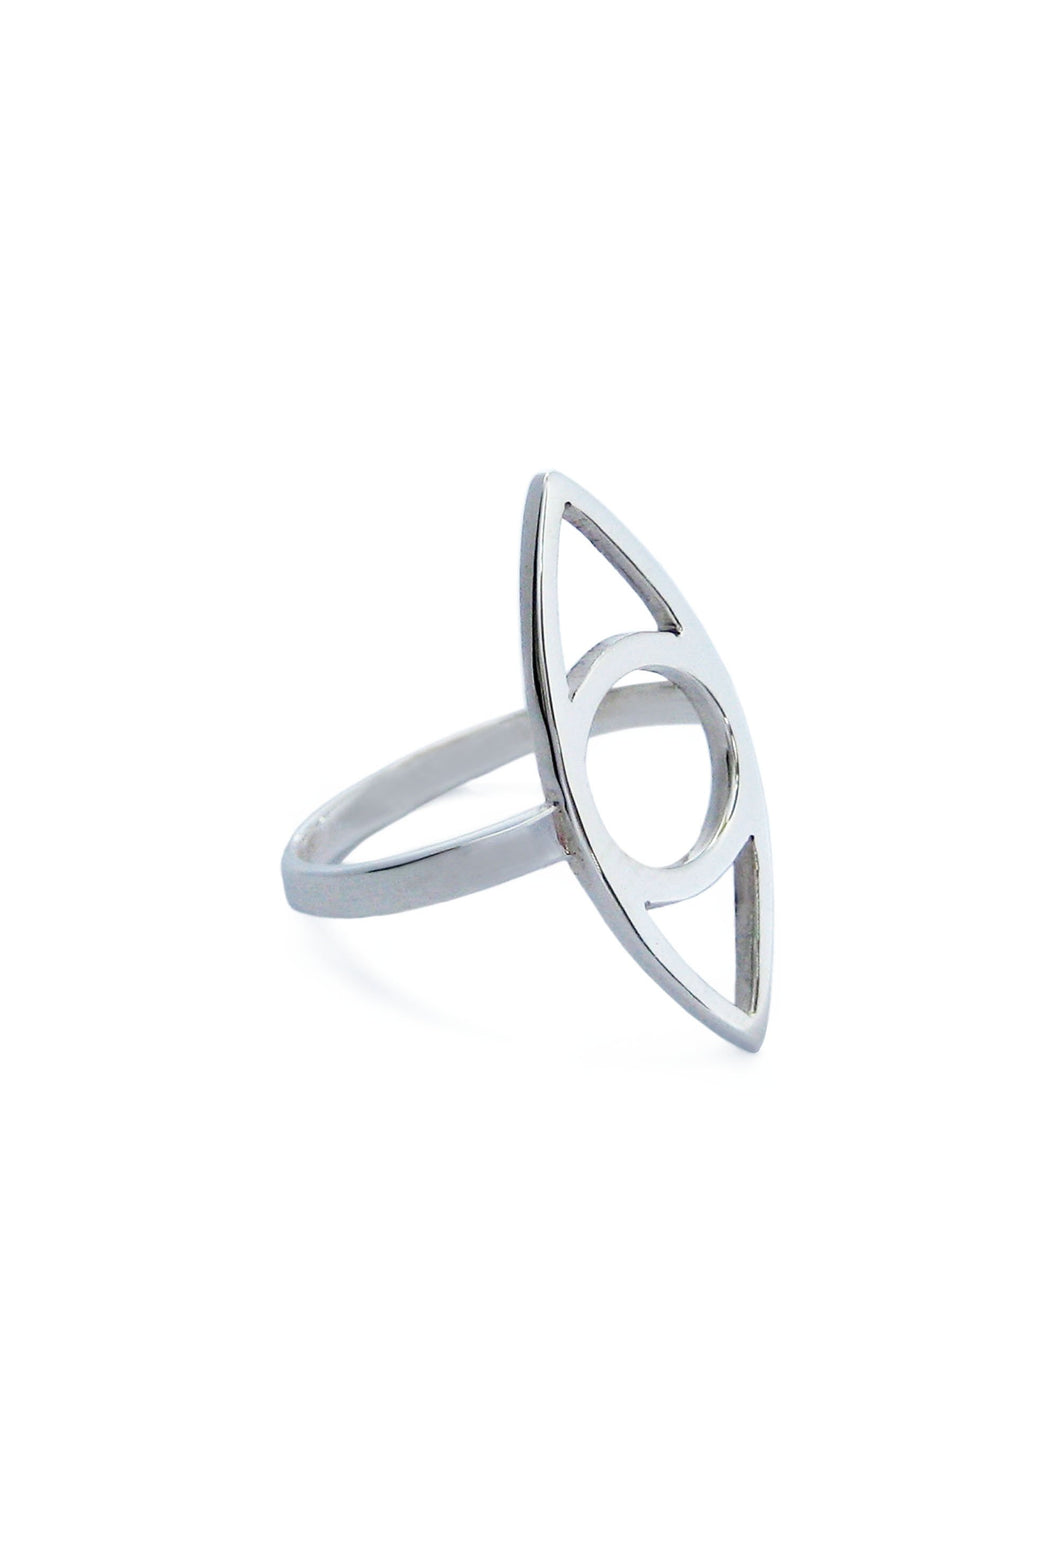 Eye ring handmade in 925 sterling silver. Eye ring designad som ett öga, handgjord i silver.